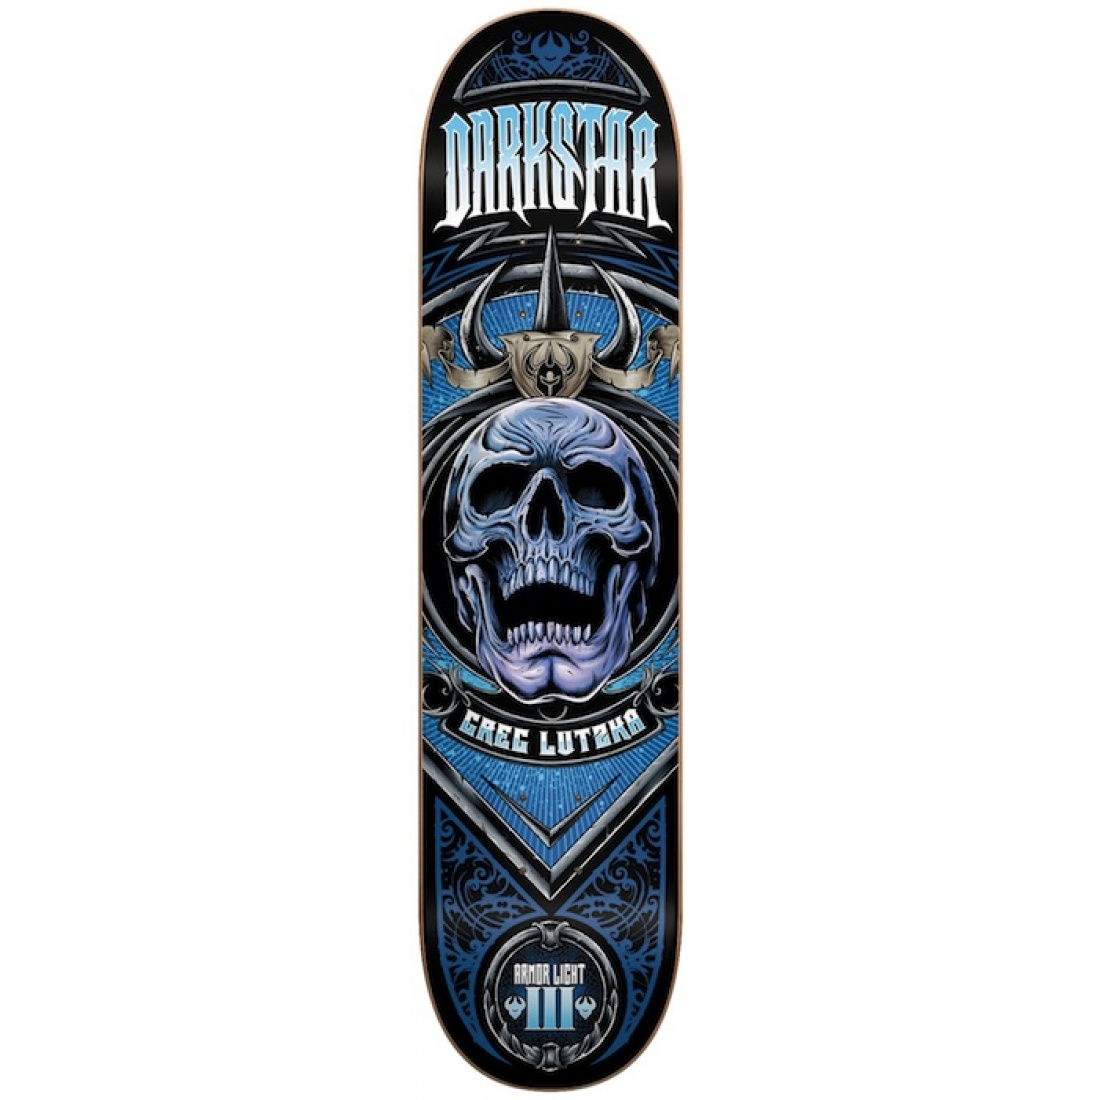 DST-Crest Armor Light 3 Lutzka 7.9 Deck